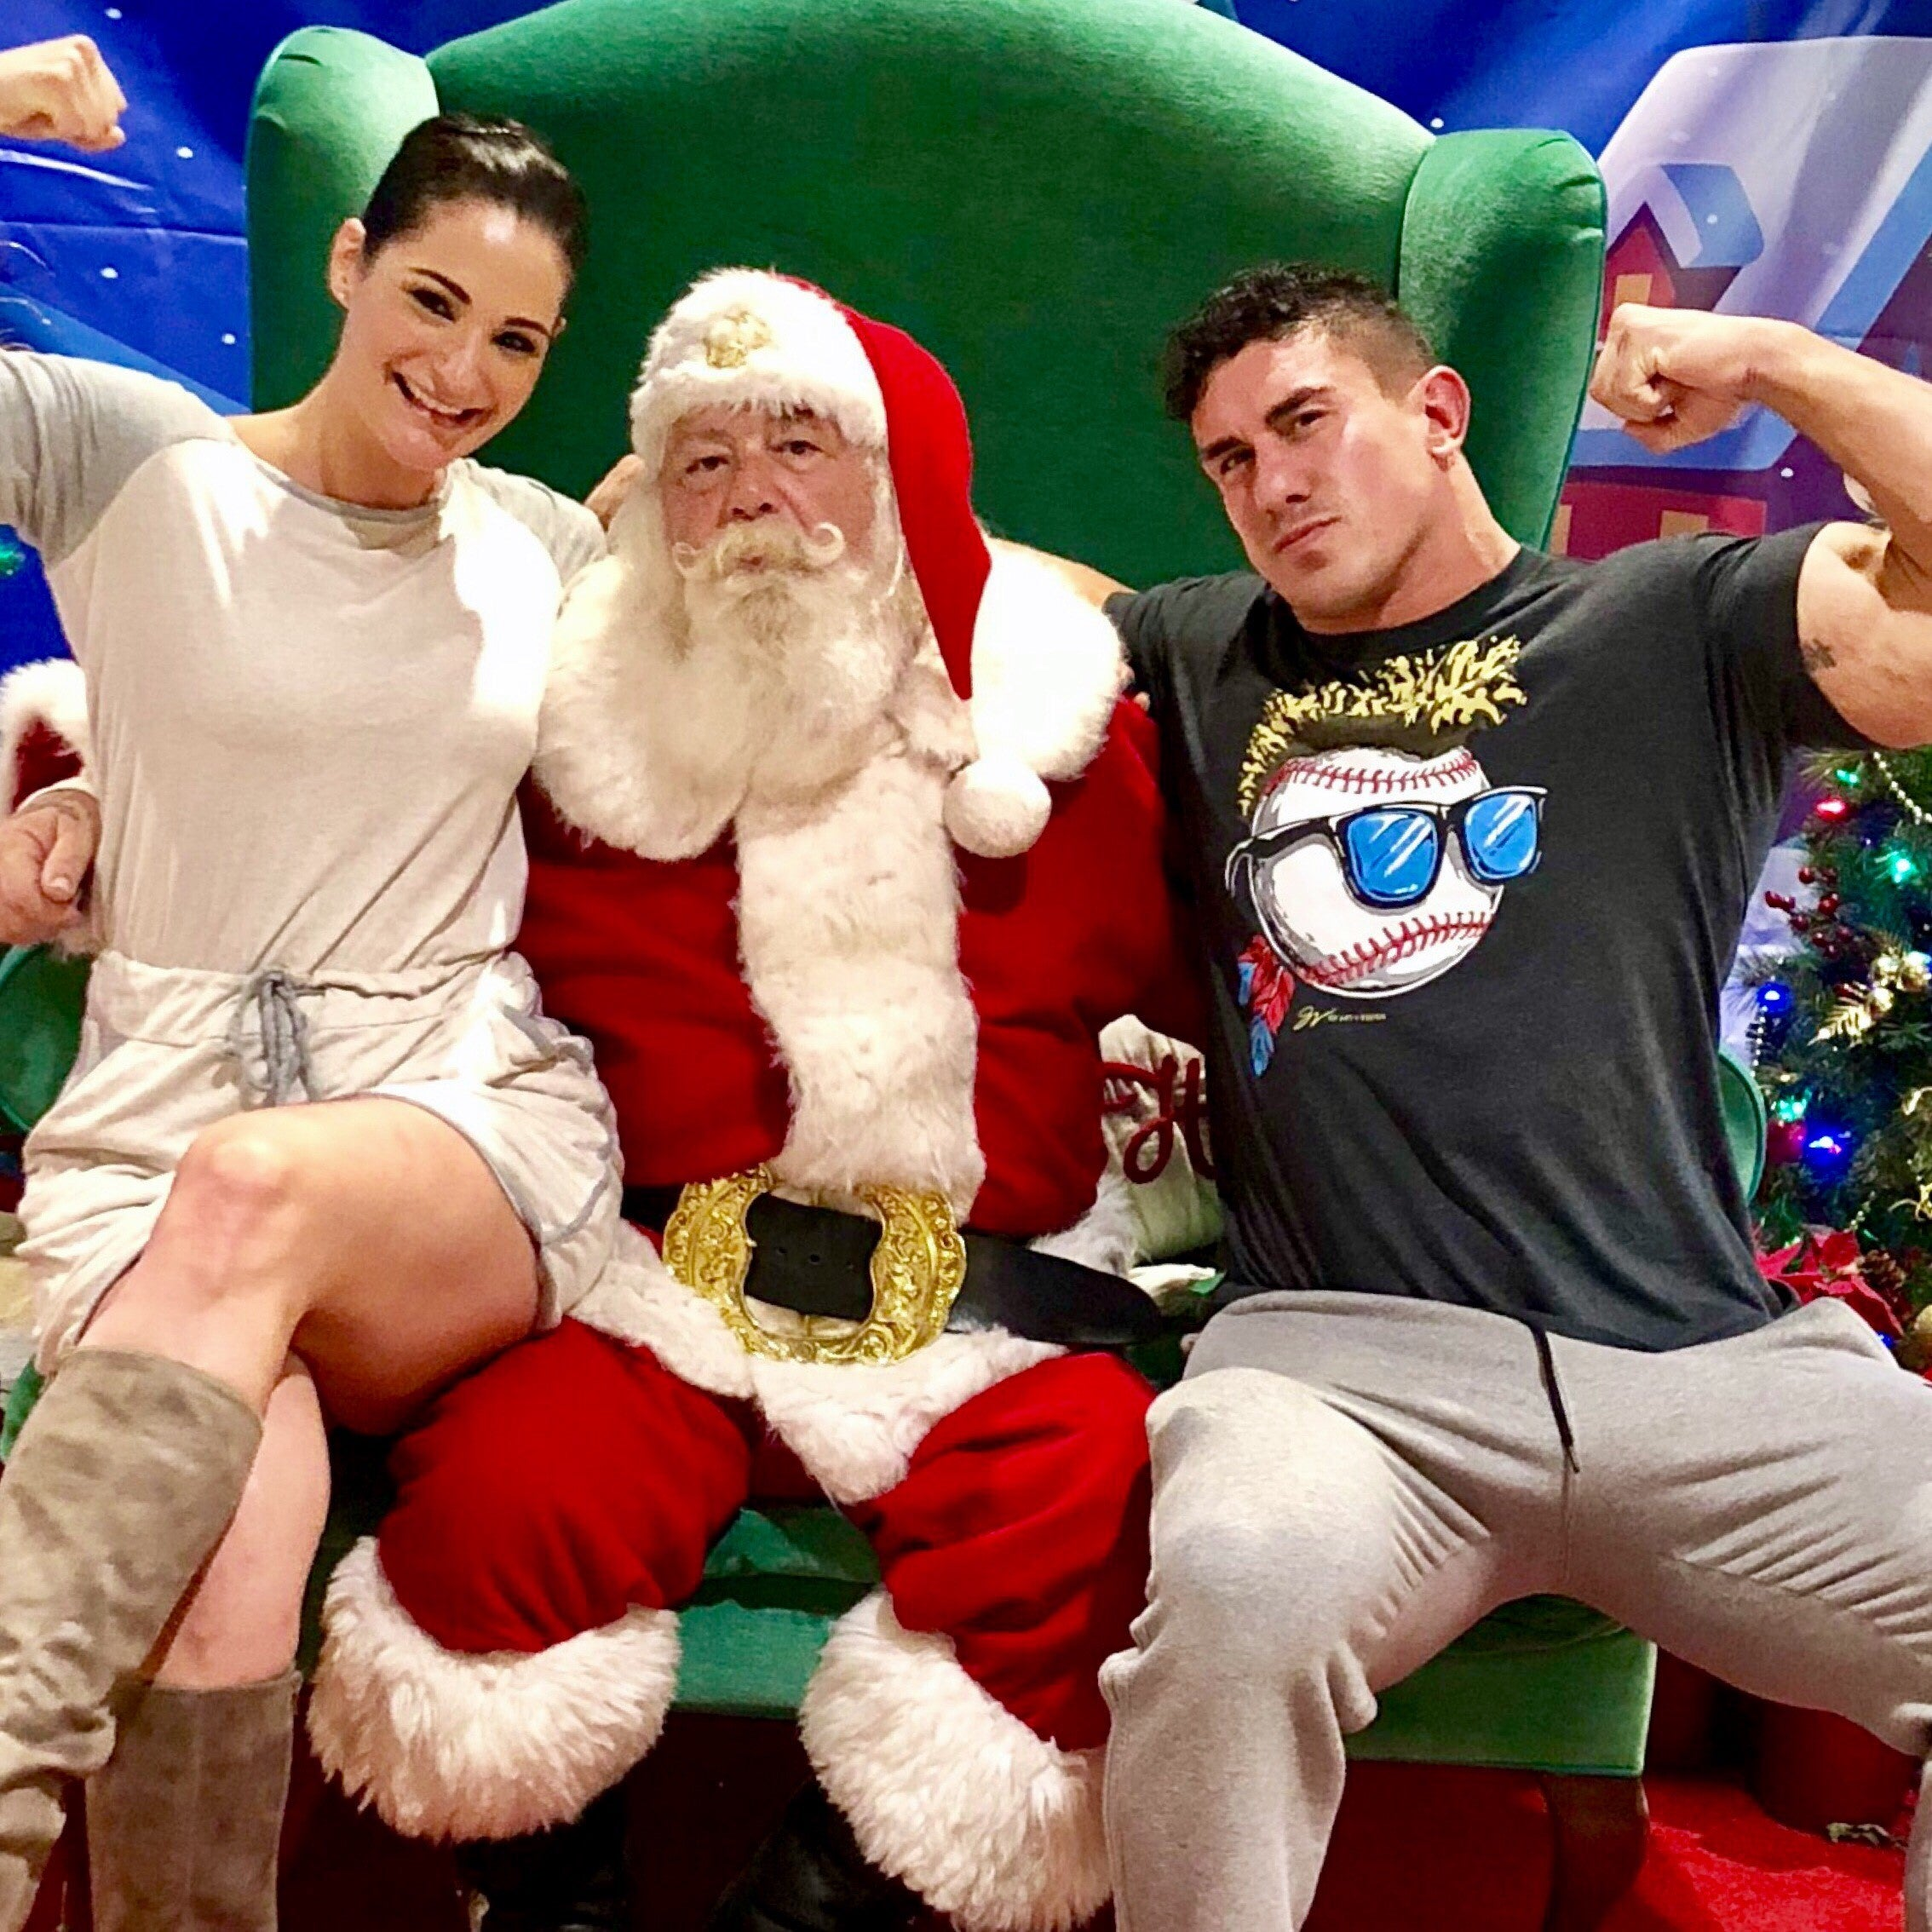 Merry Christmas with sam shorkey and EC3 with santa